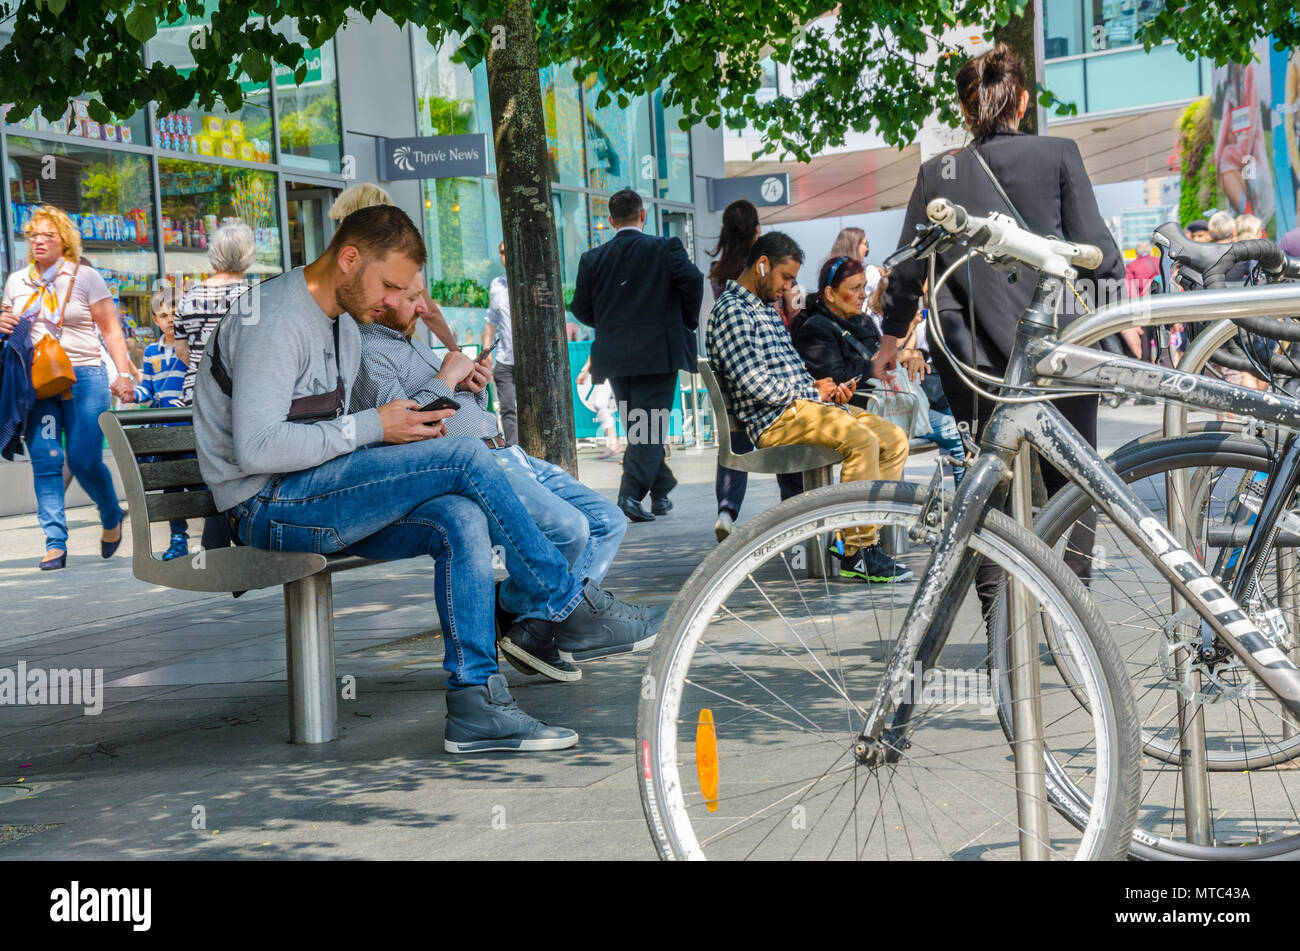 Bicycles parked in a bicycle rack next to benches with people sat preoccupied with their mobile phones, - Stock Image